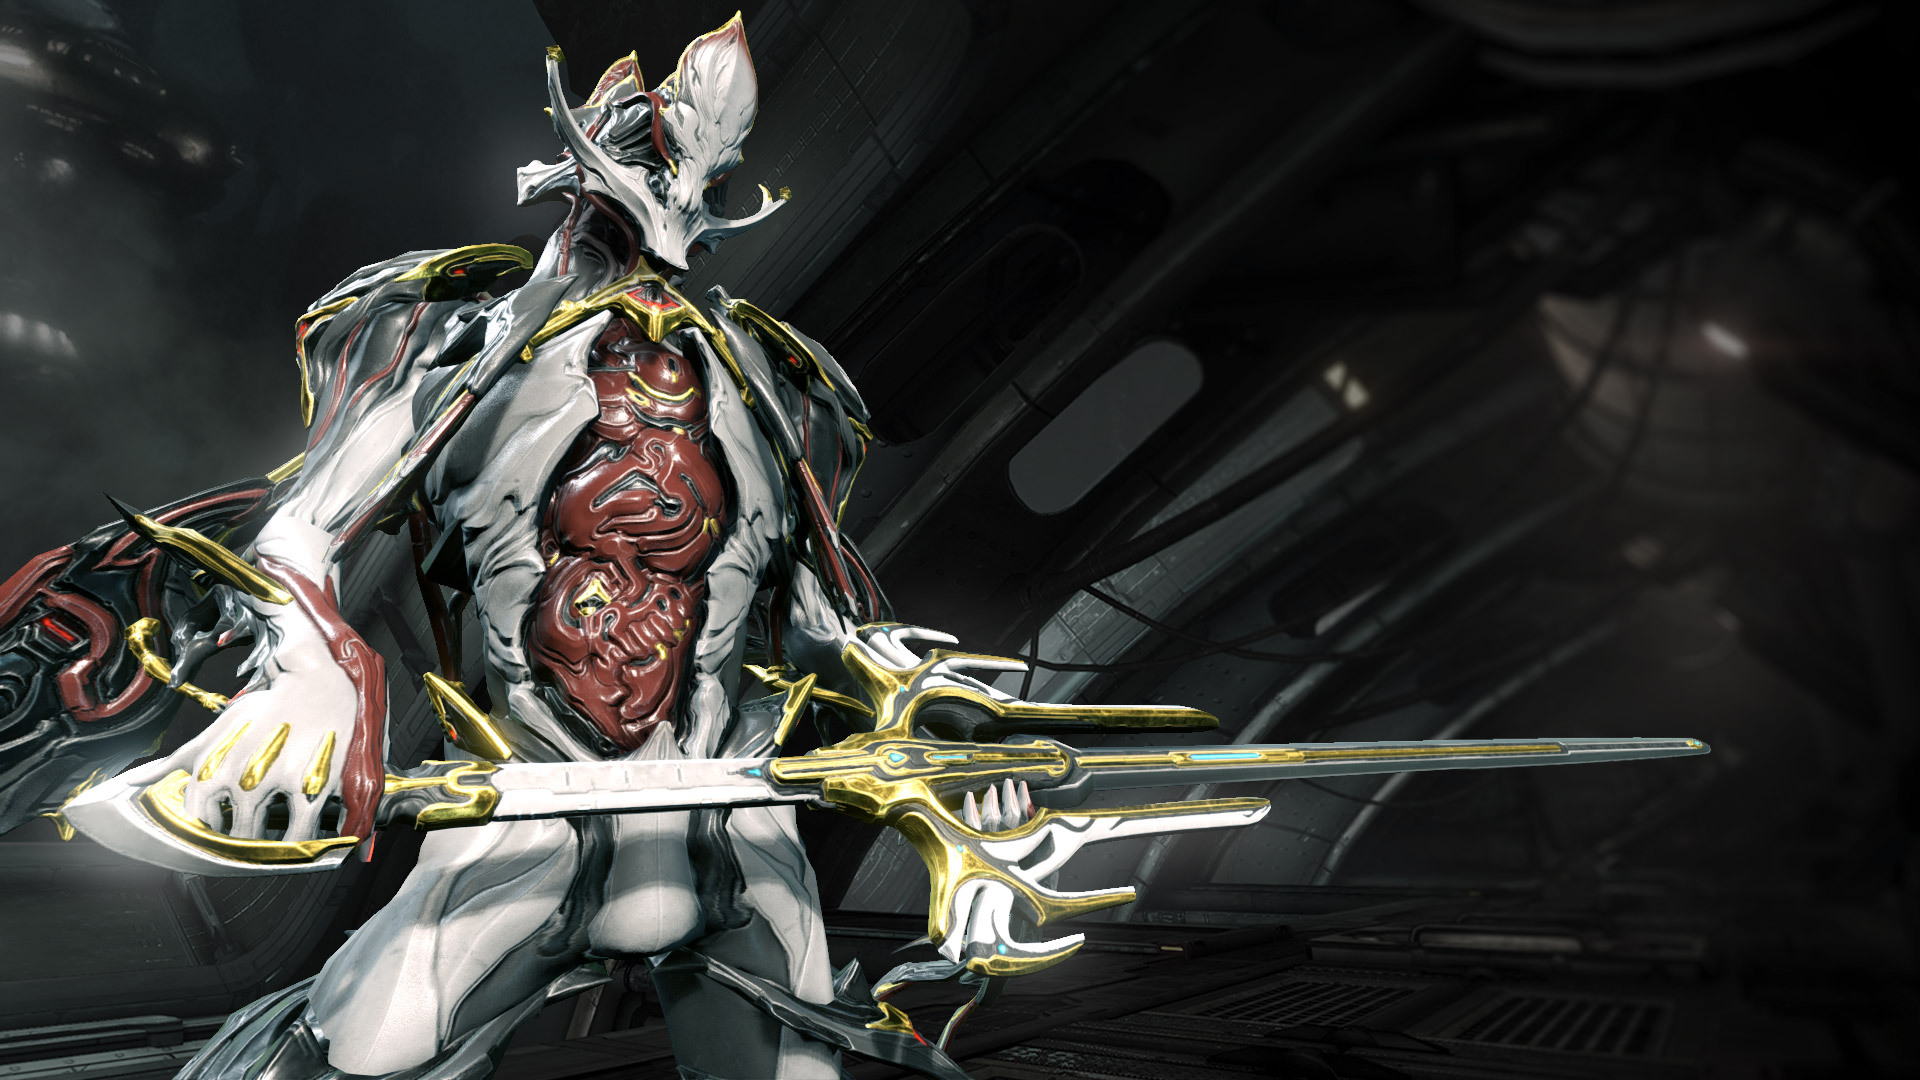 Notizie Di Steam Warframe Nekros Prime Access Is Here If not, when would i use the sancti over the prime? steam warframe nekros prime